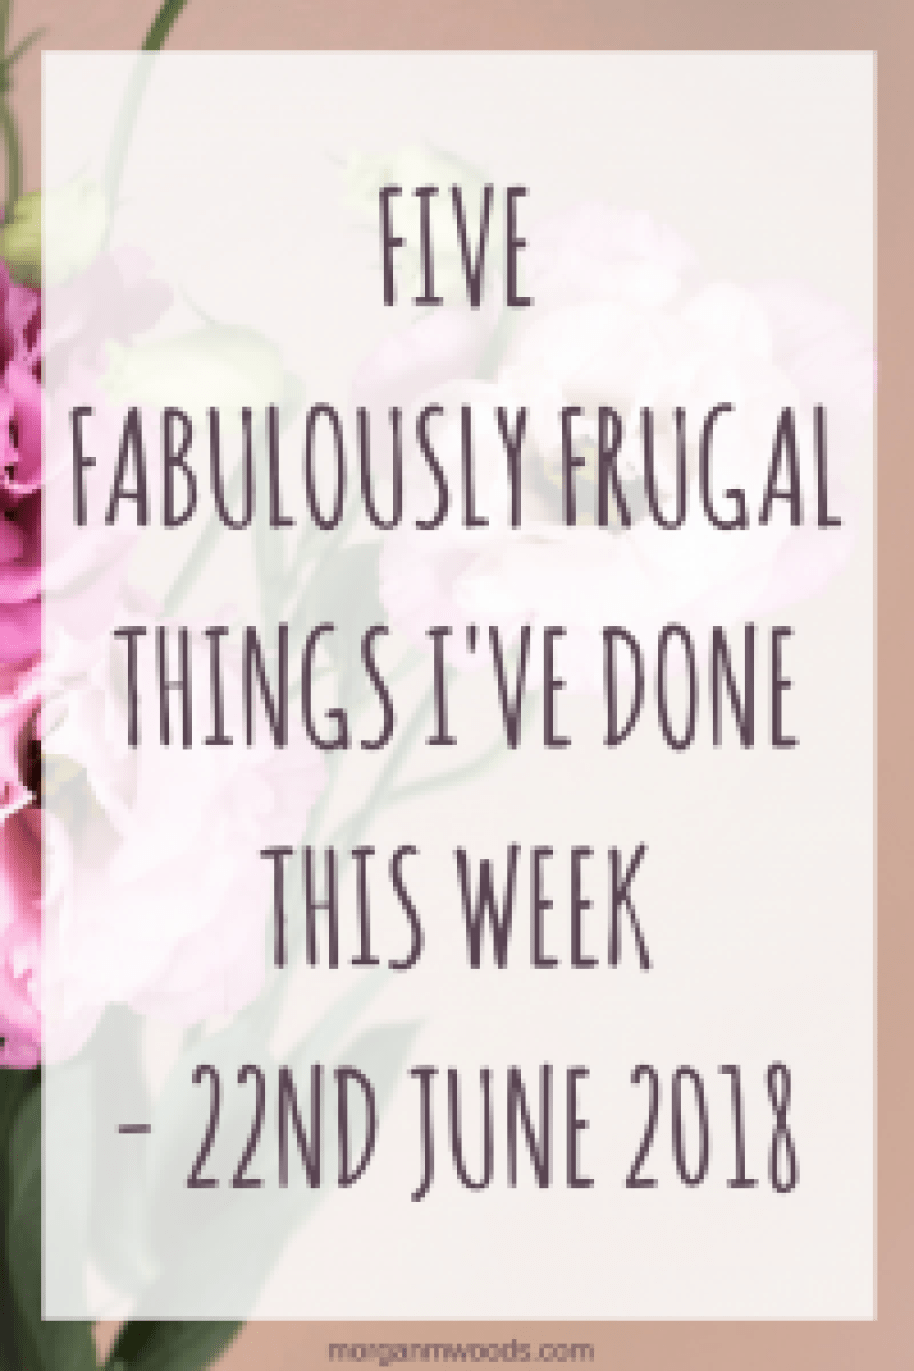 Five fabulously frugal things I've done this week - 22nd June 2018